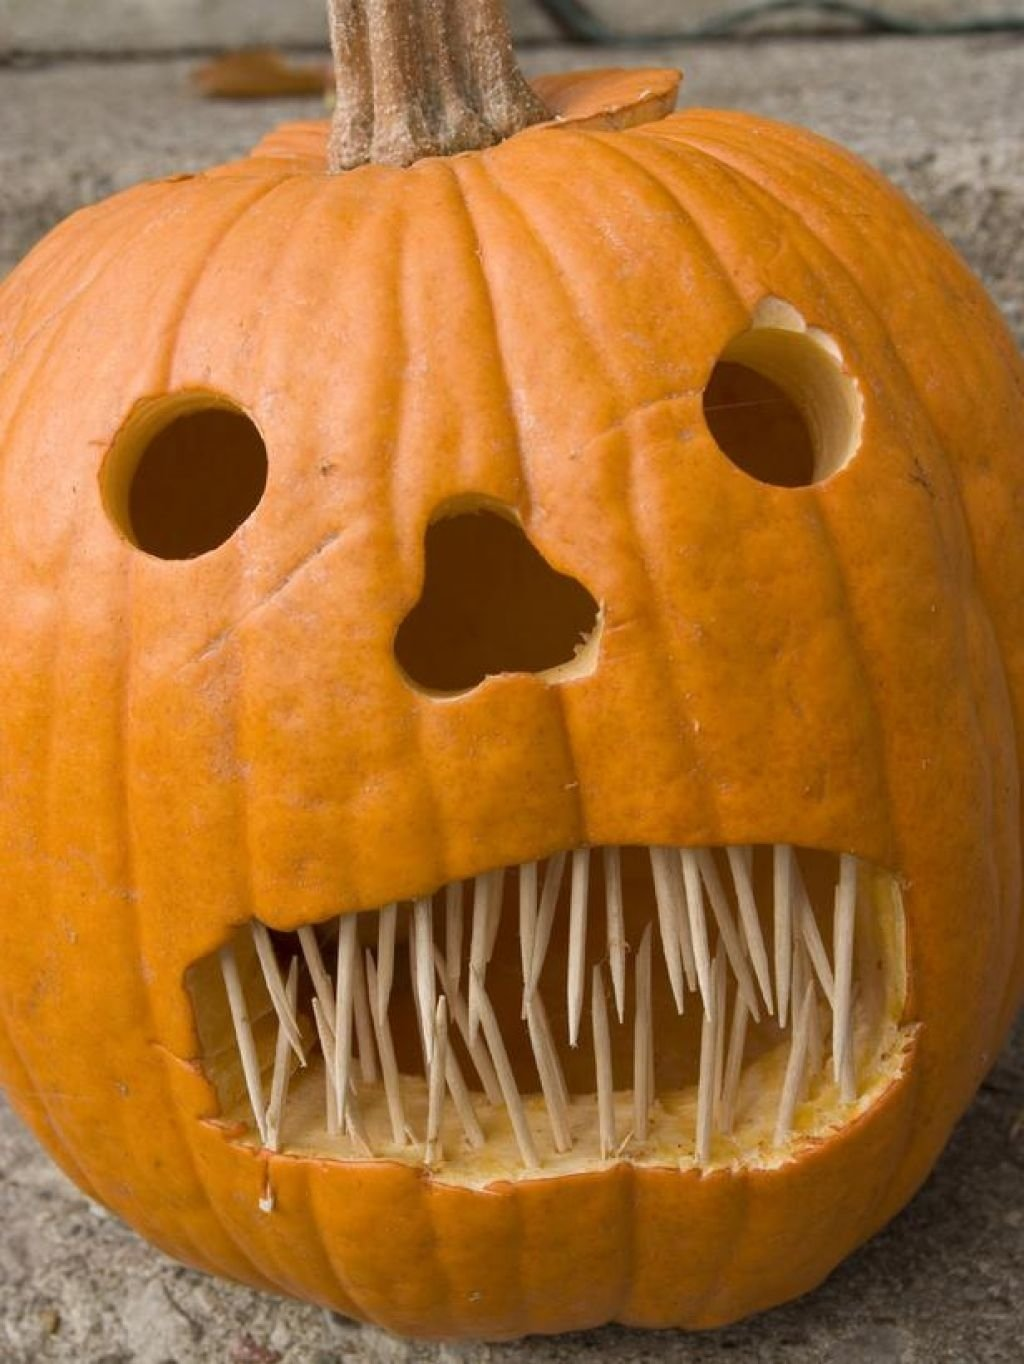 10 Famous Pumpkin Carving Ideas For Girls decorating ideas handsome picture of spook scary kid love pumpkin 2020